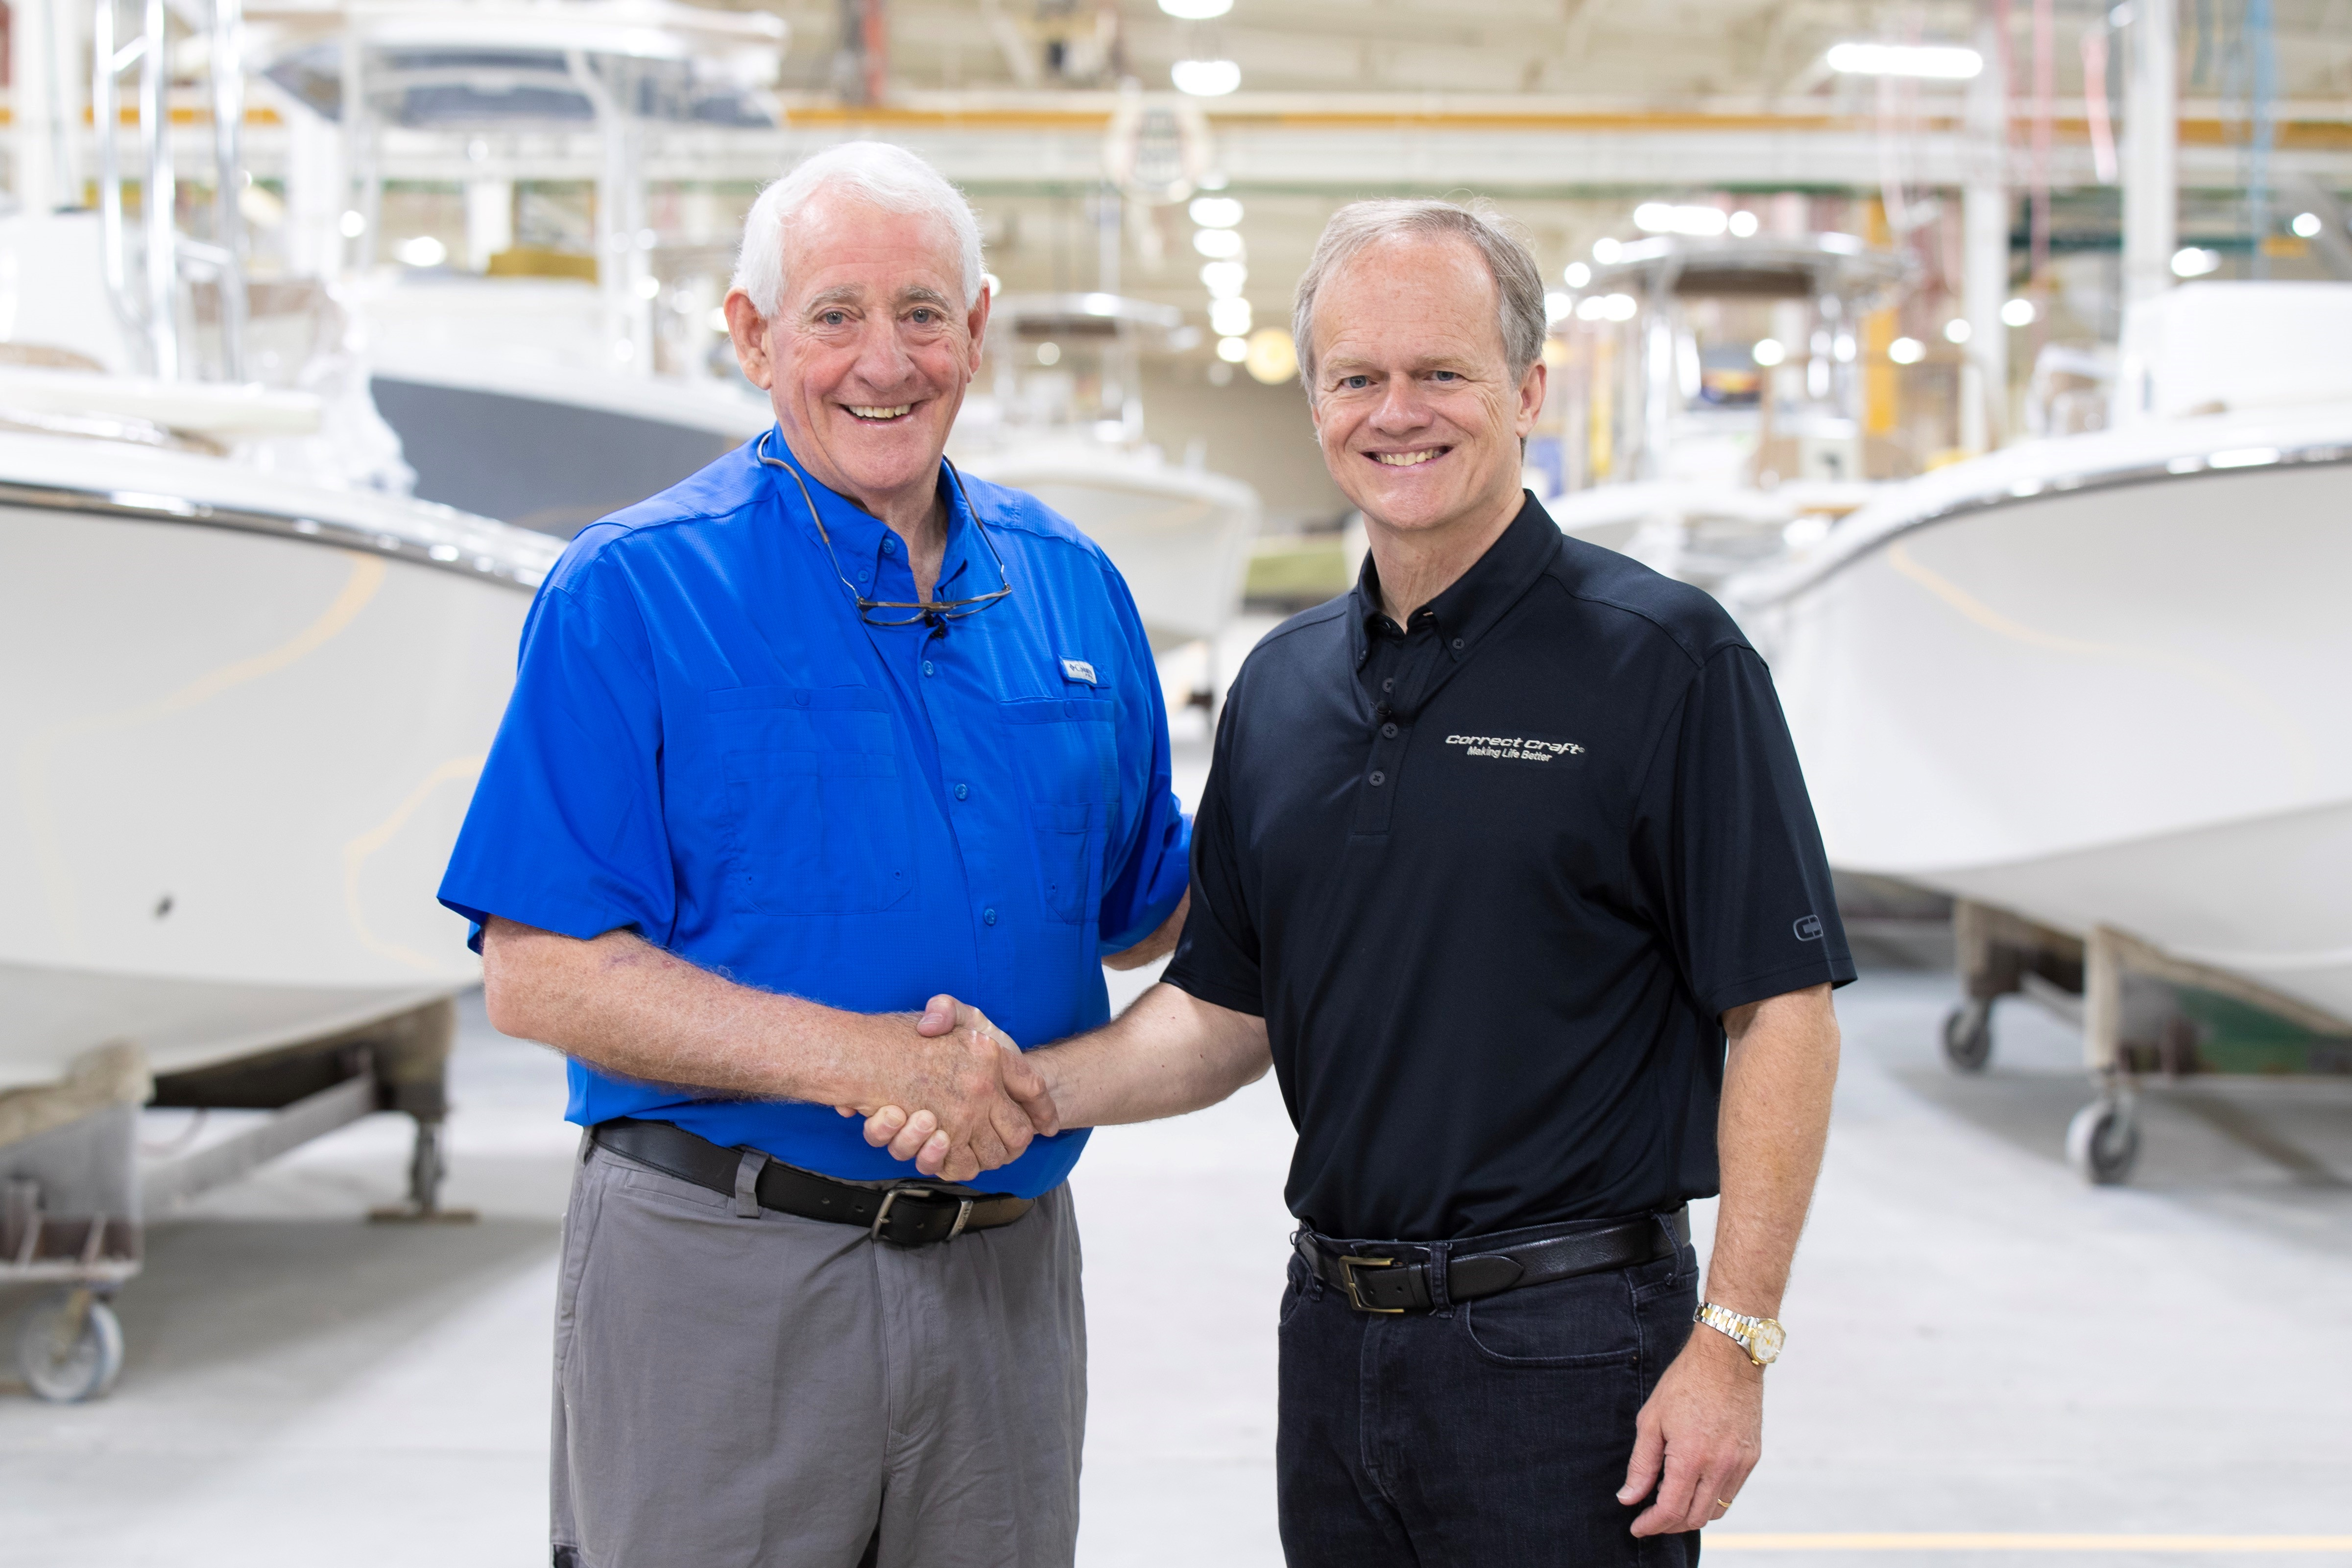 CORRECT CRAFT ACQUIRES PARKER BOATS – Correct Craft